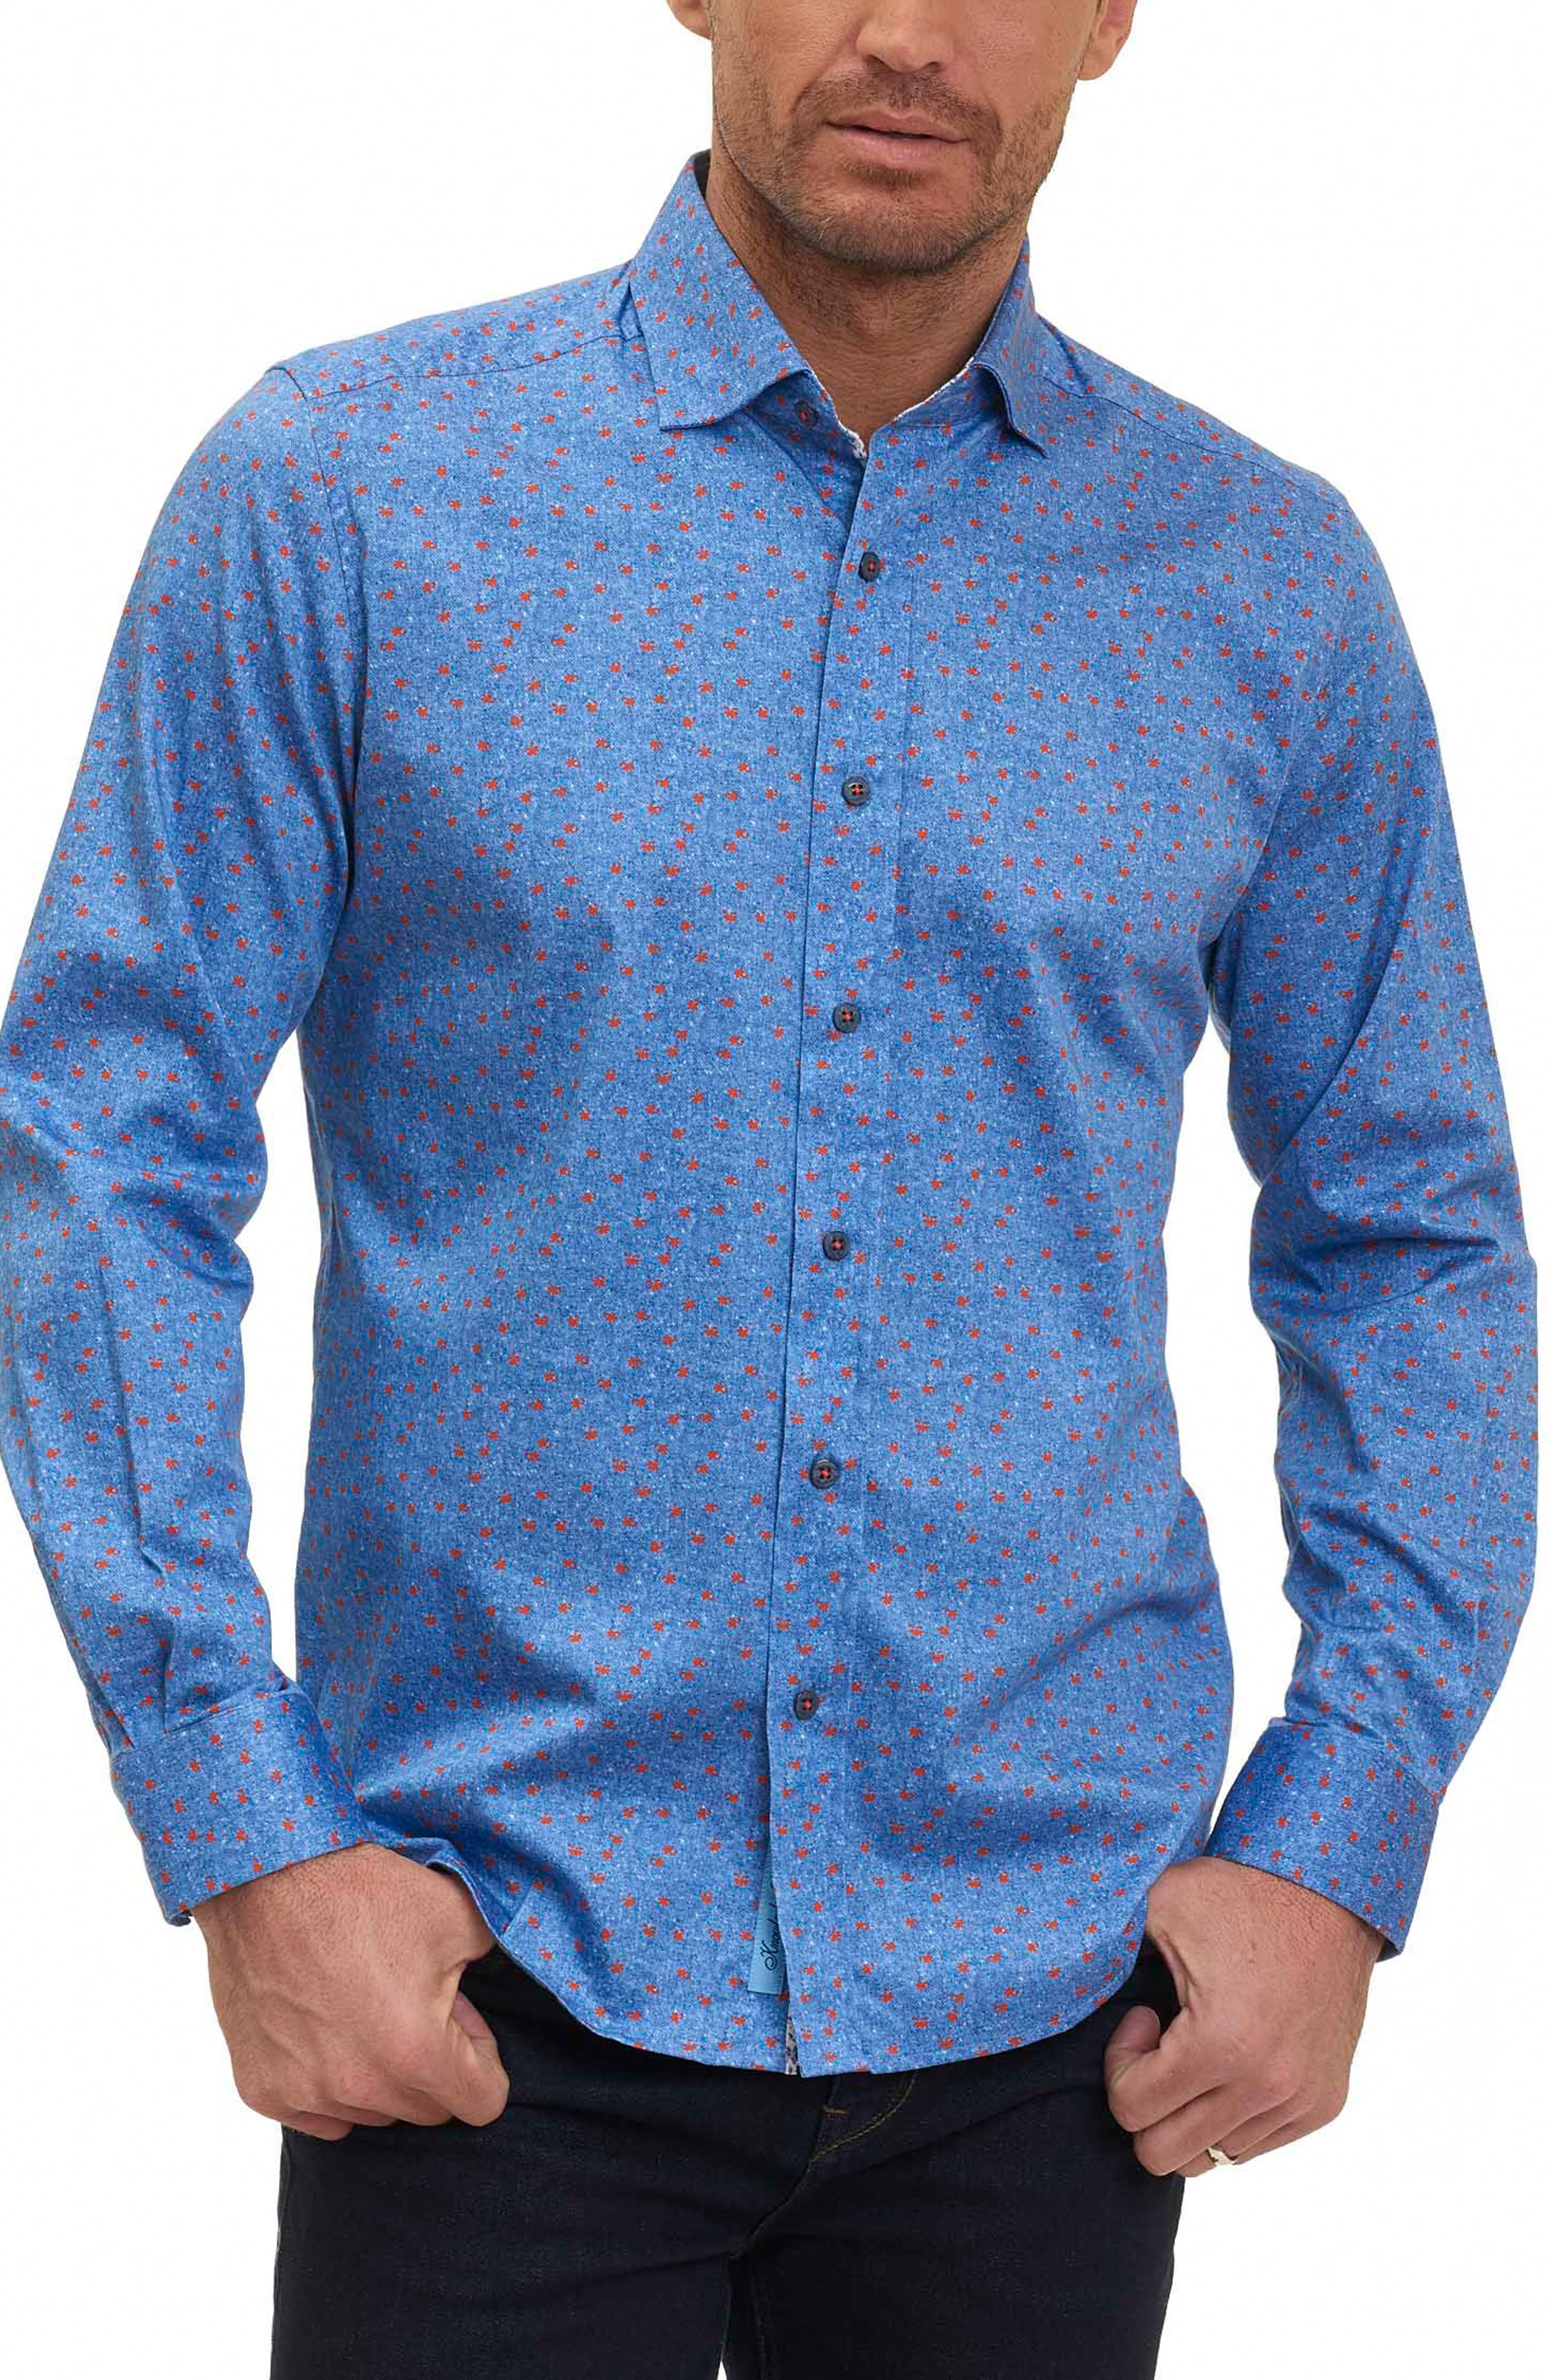 Zander Tailored Fit Sport Shirt,                             Main thumbnail 1, color,                             Blue